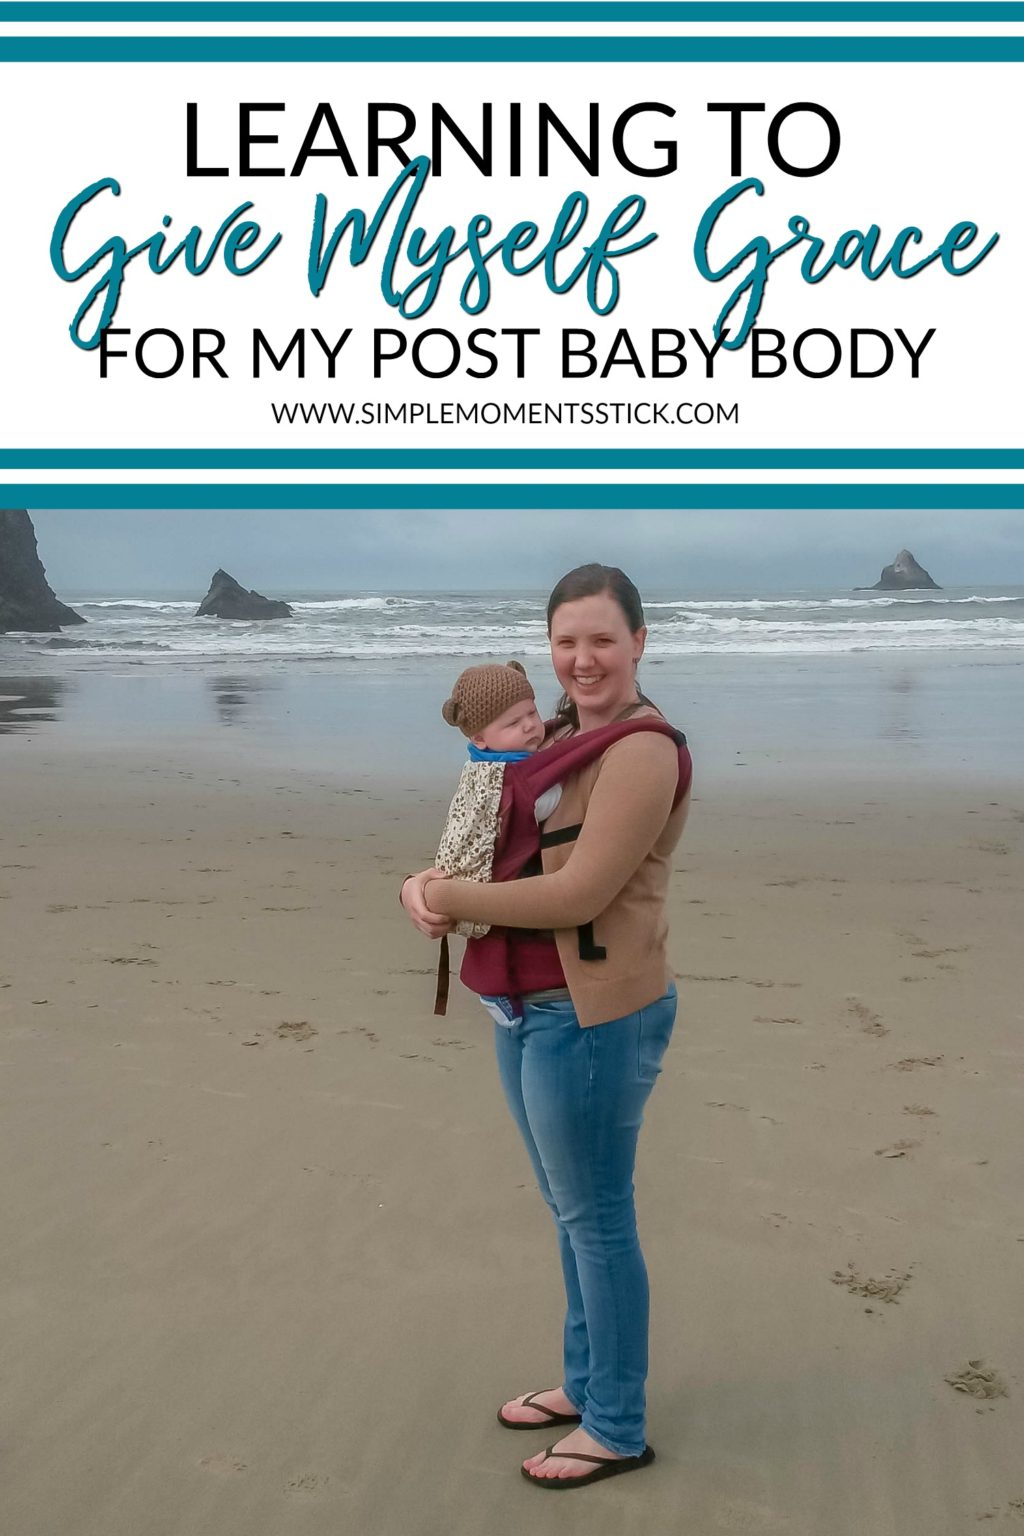 I'm having a hard time accepting my post baby body.  I hope what I'm learning helps you!